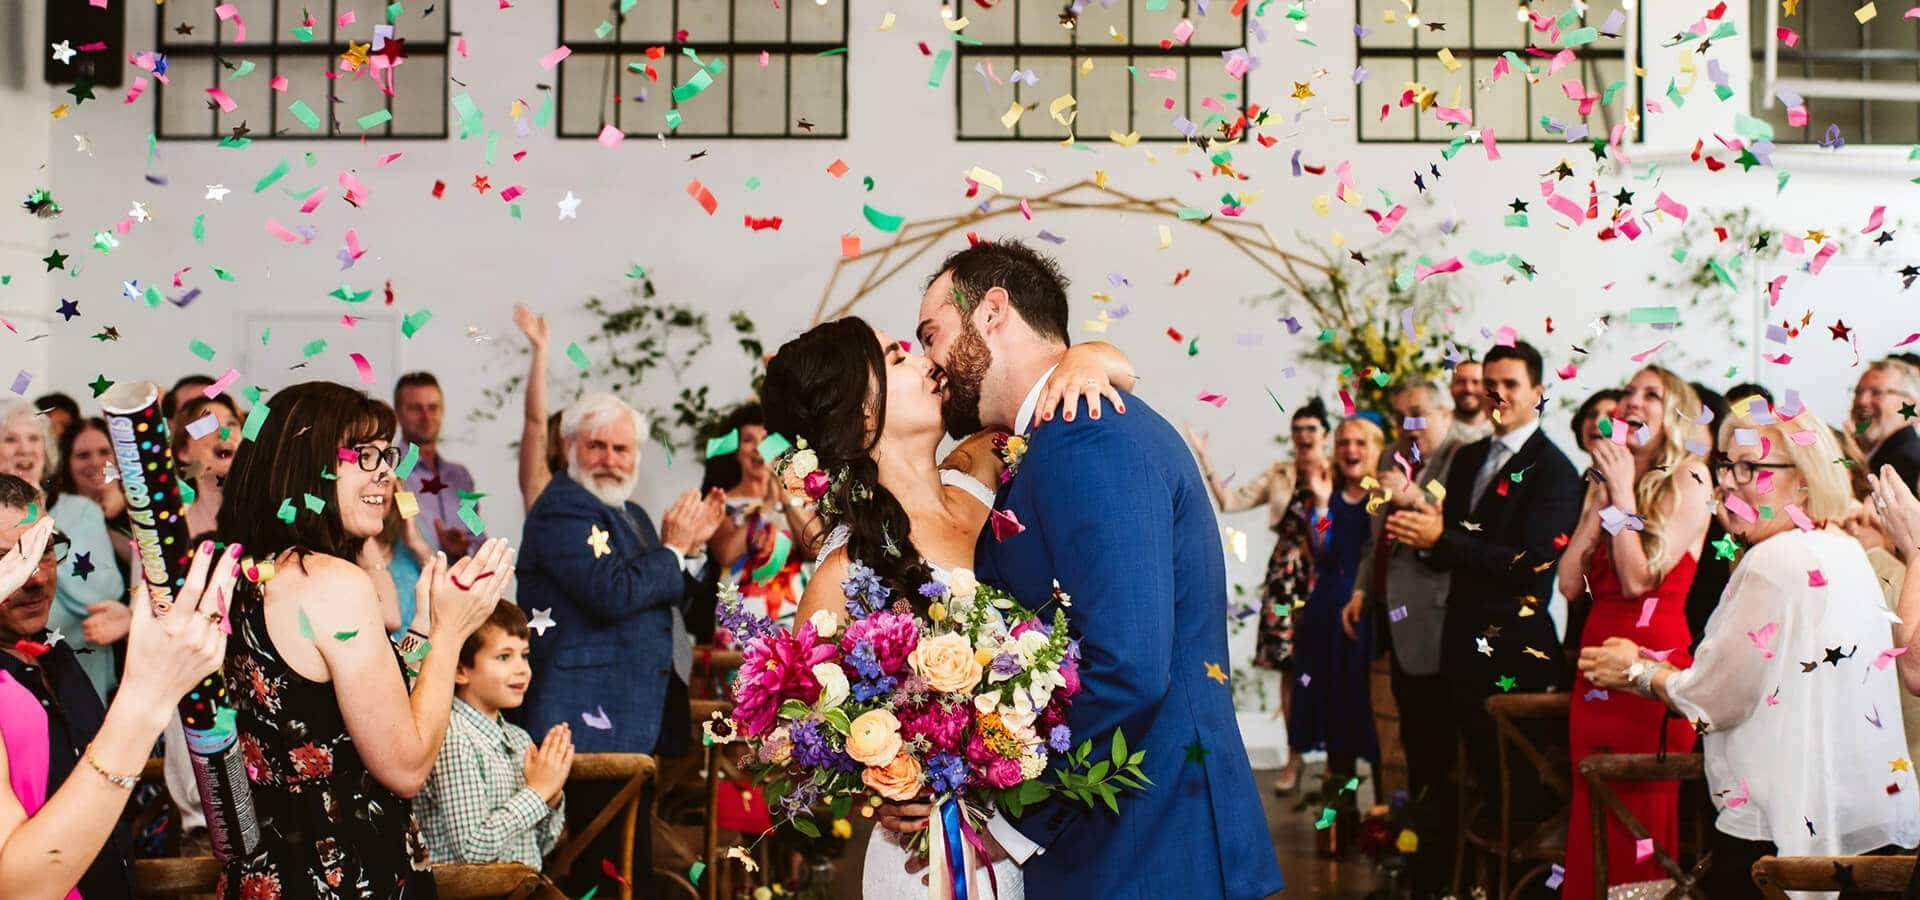 Hero image for Nicole and Luke's Colourful Wedding at the Distillery's Airship 37